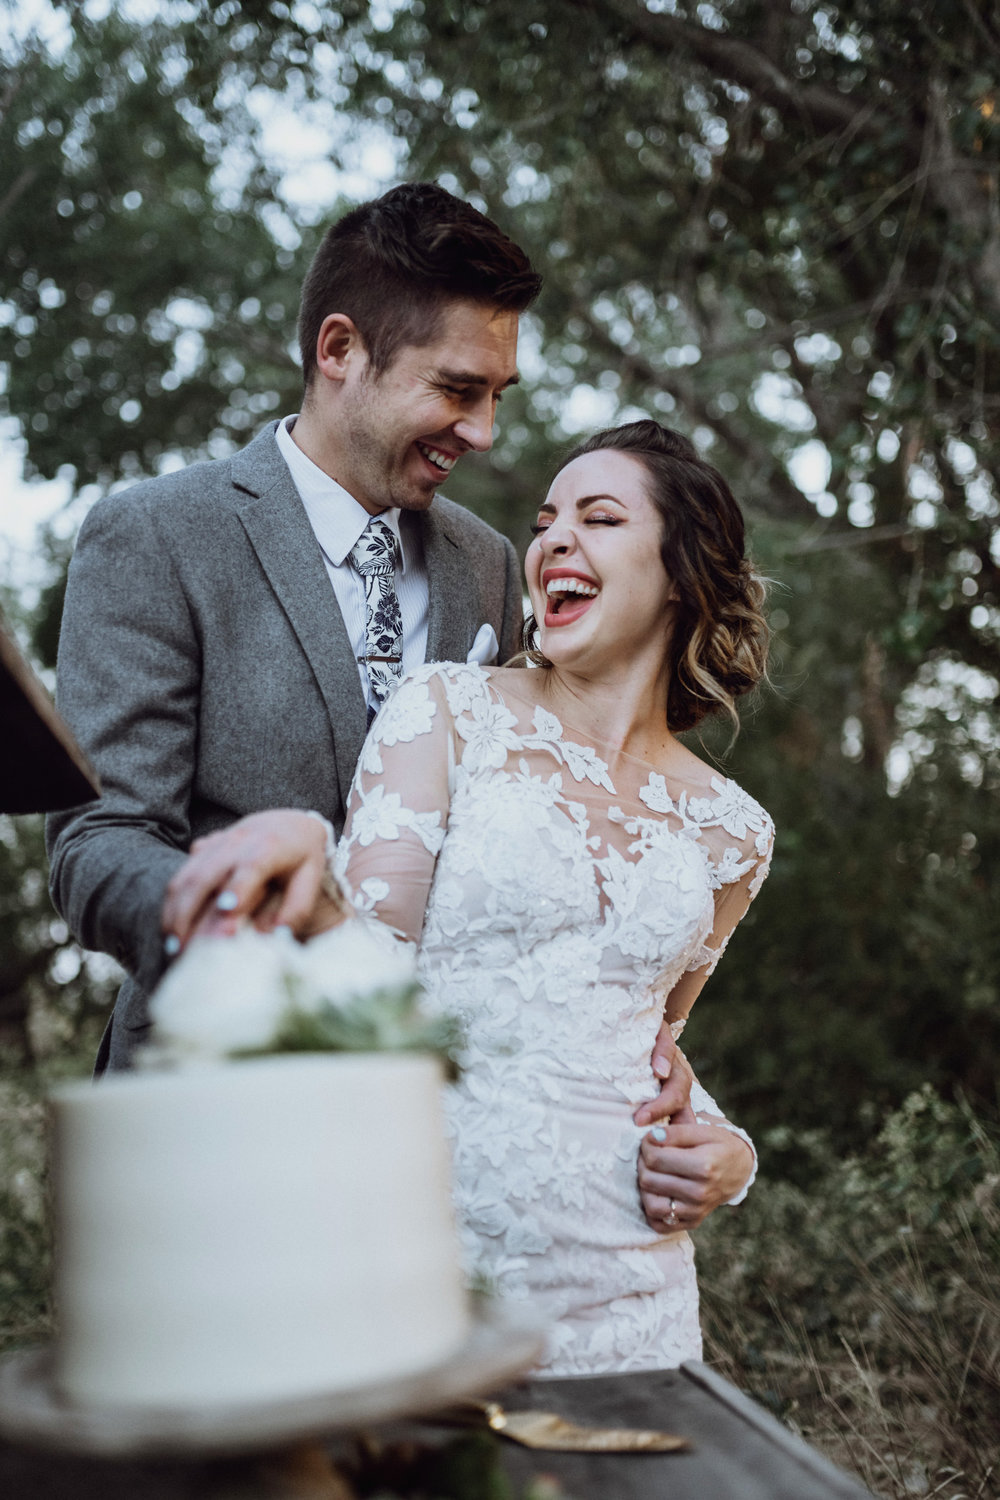 Bride and groom cutting cake in grassy field